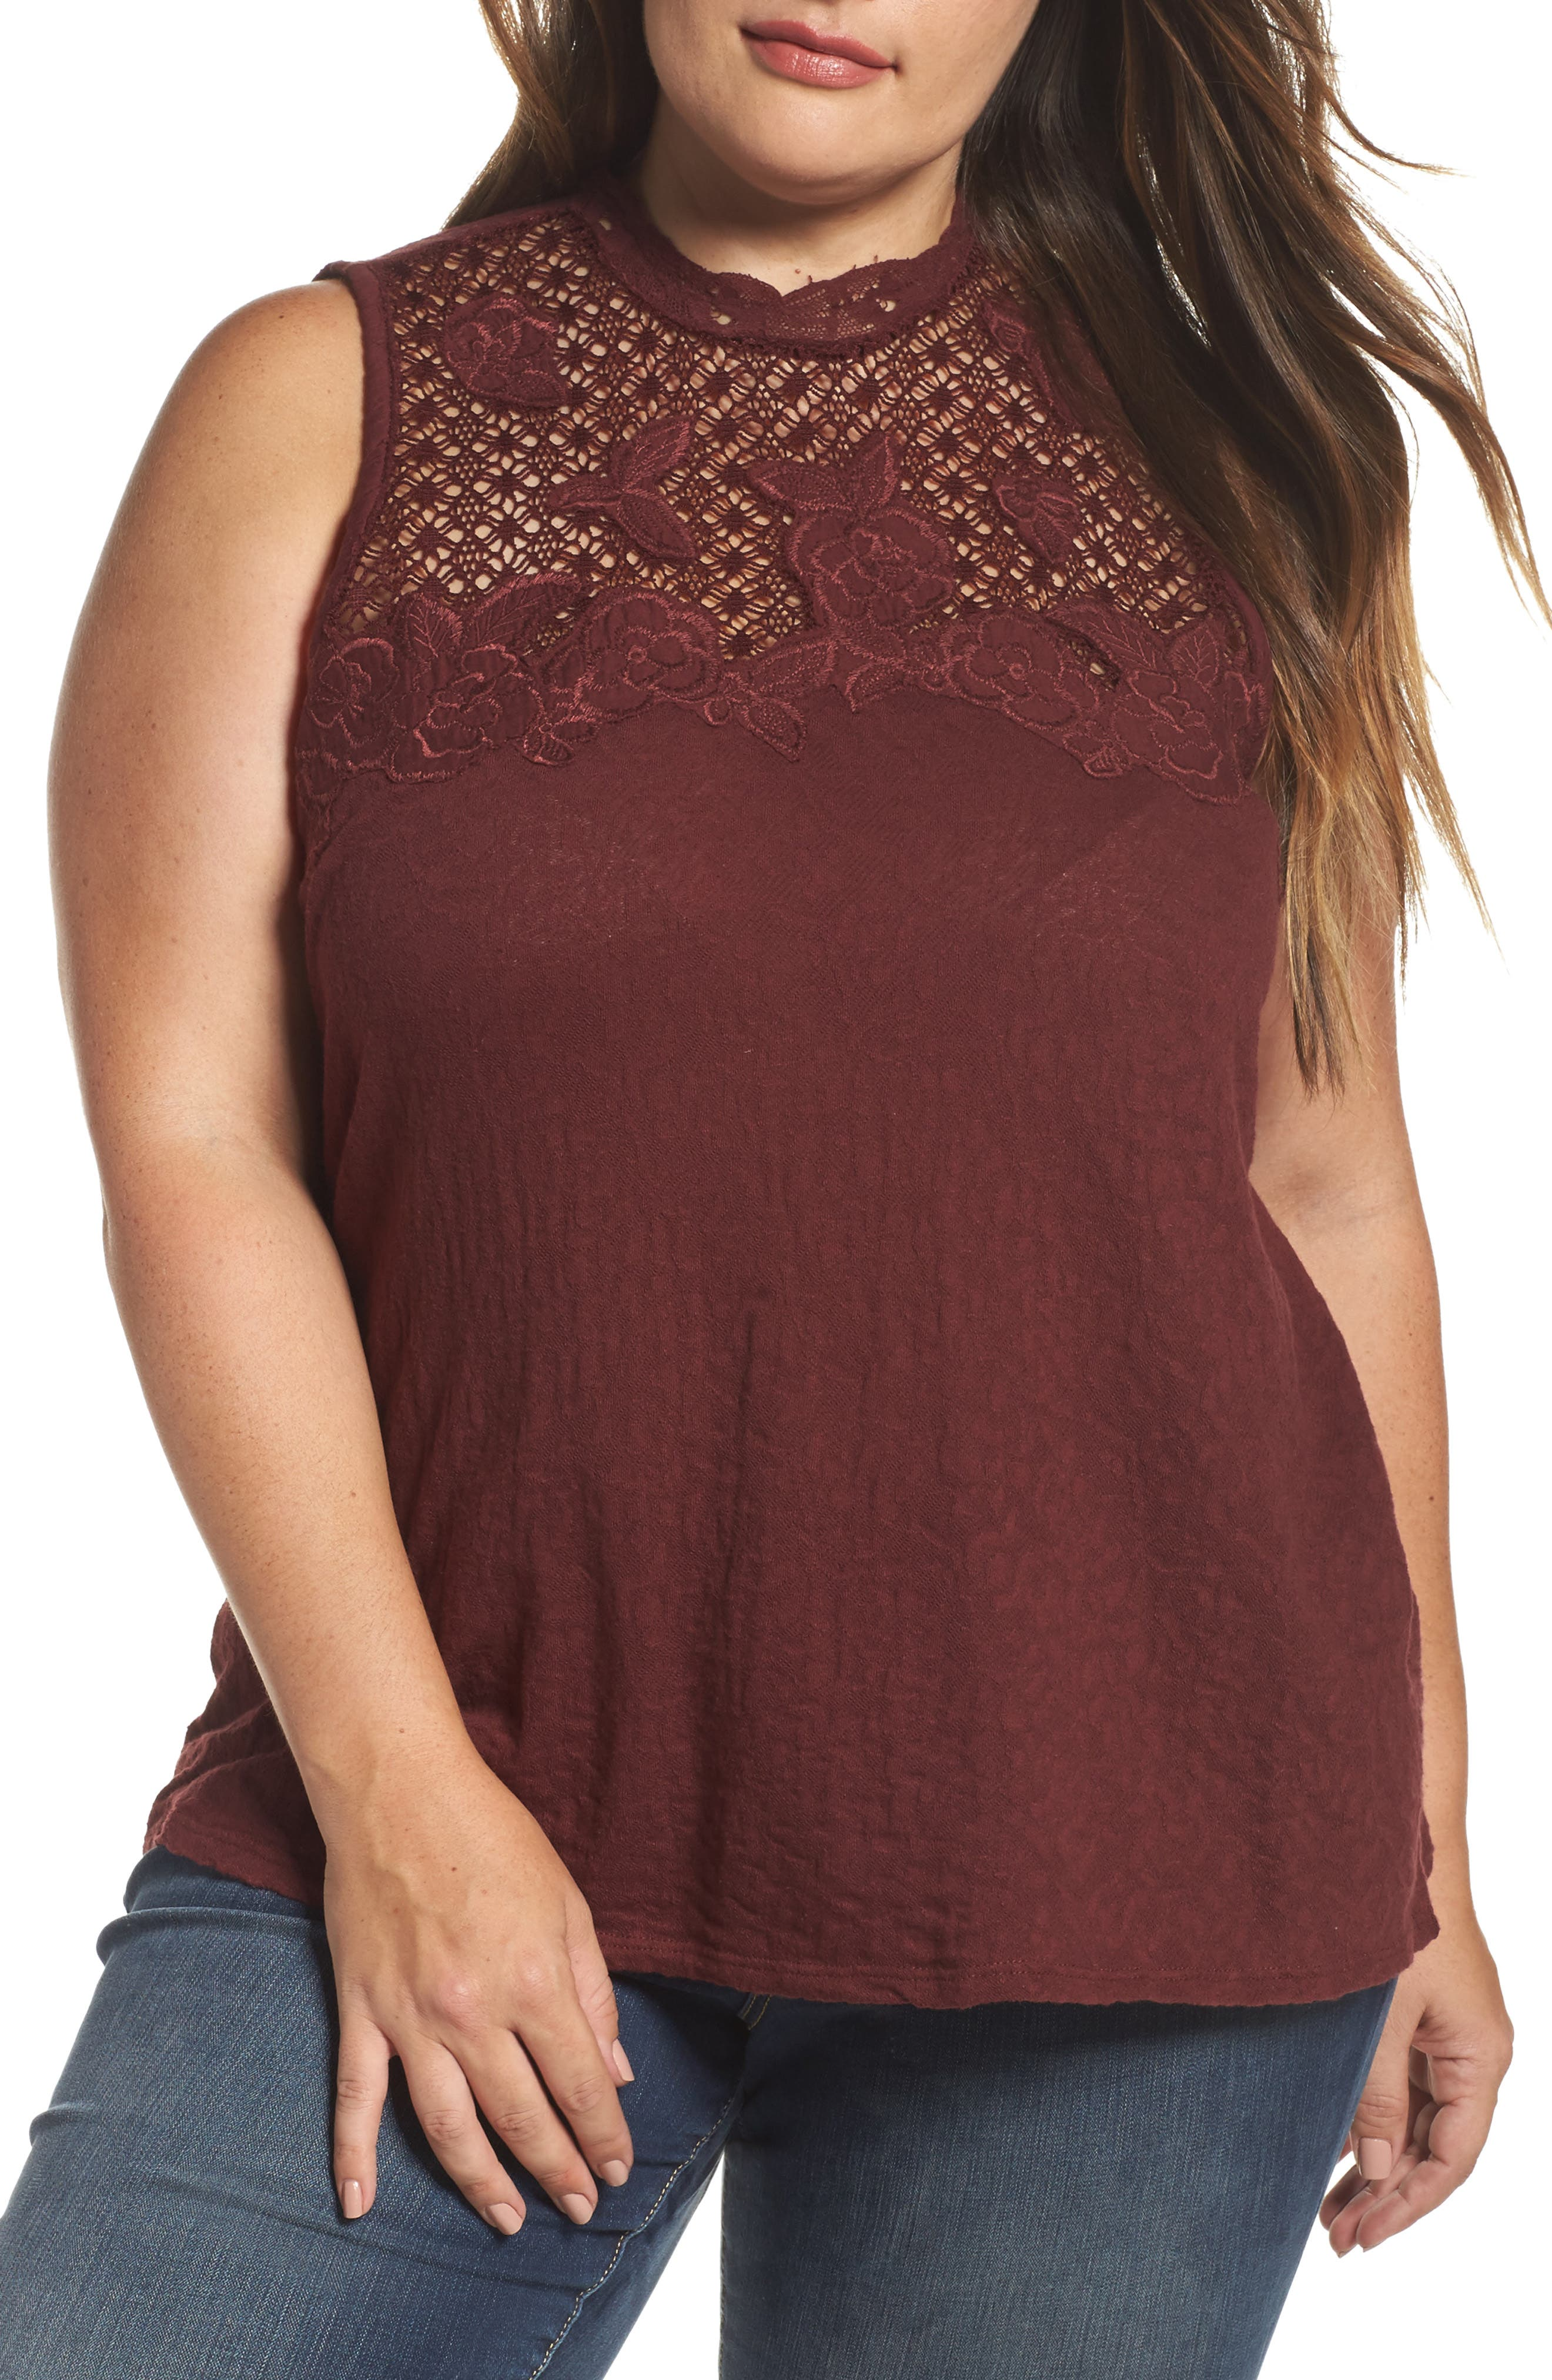 Main Image - Lucky Brand Lace Knit Top (Plus Size)